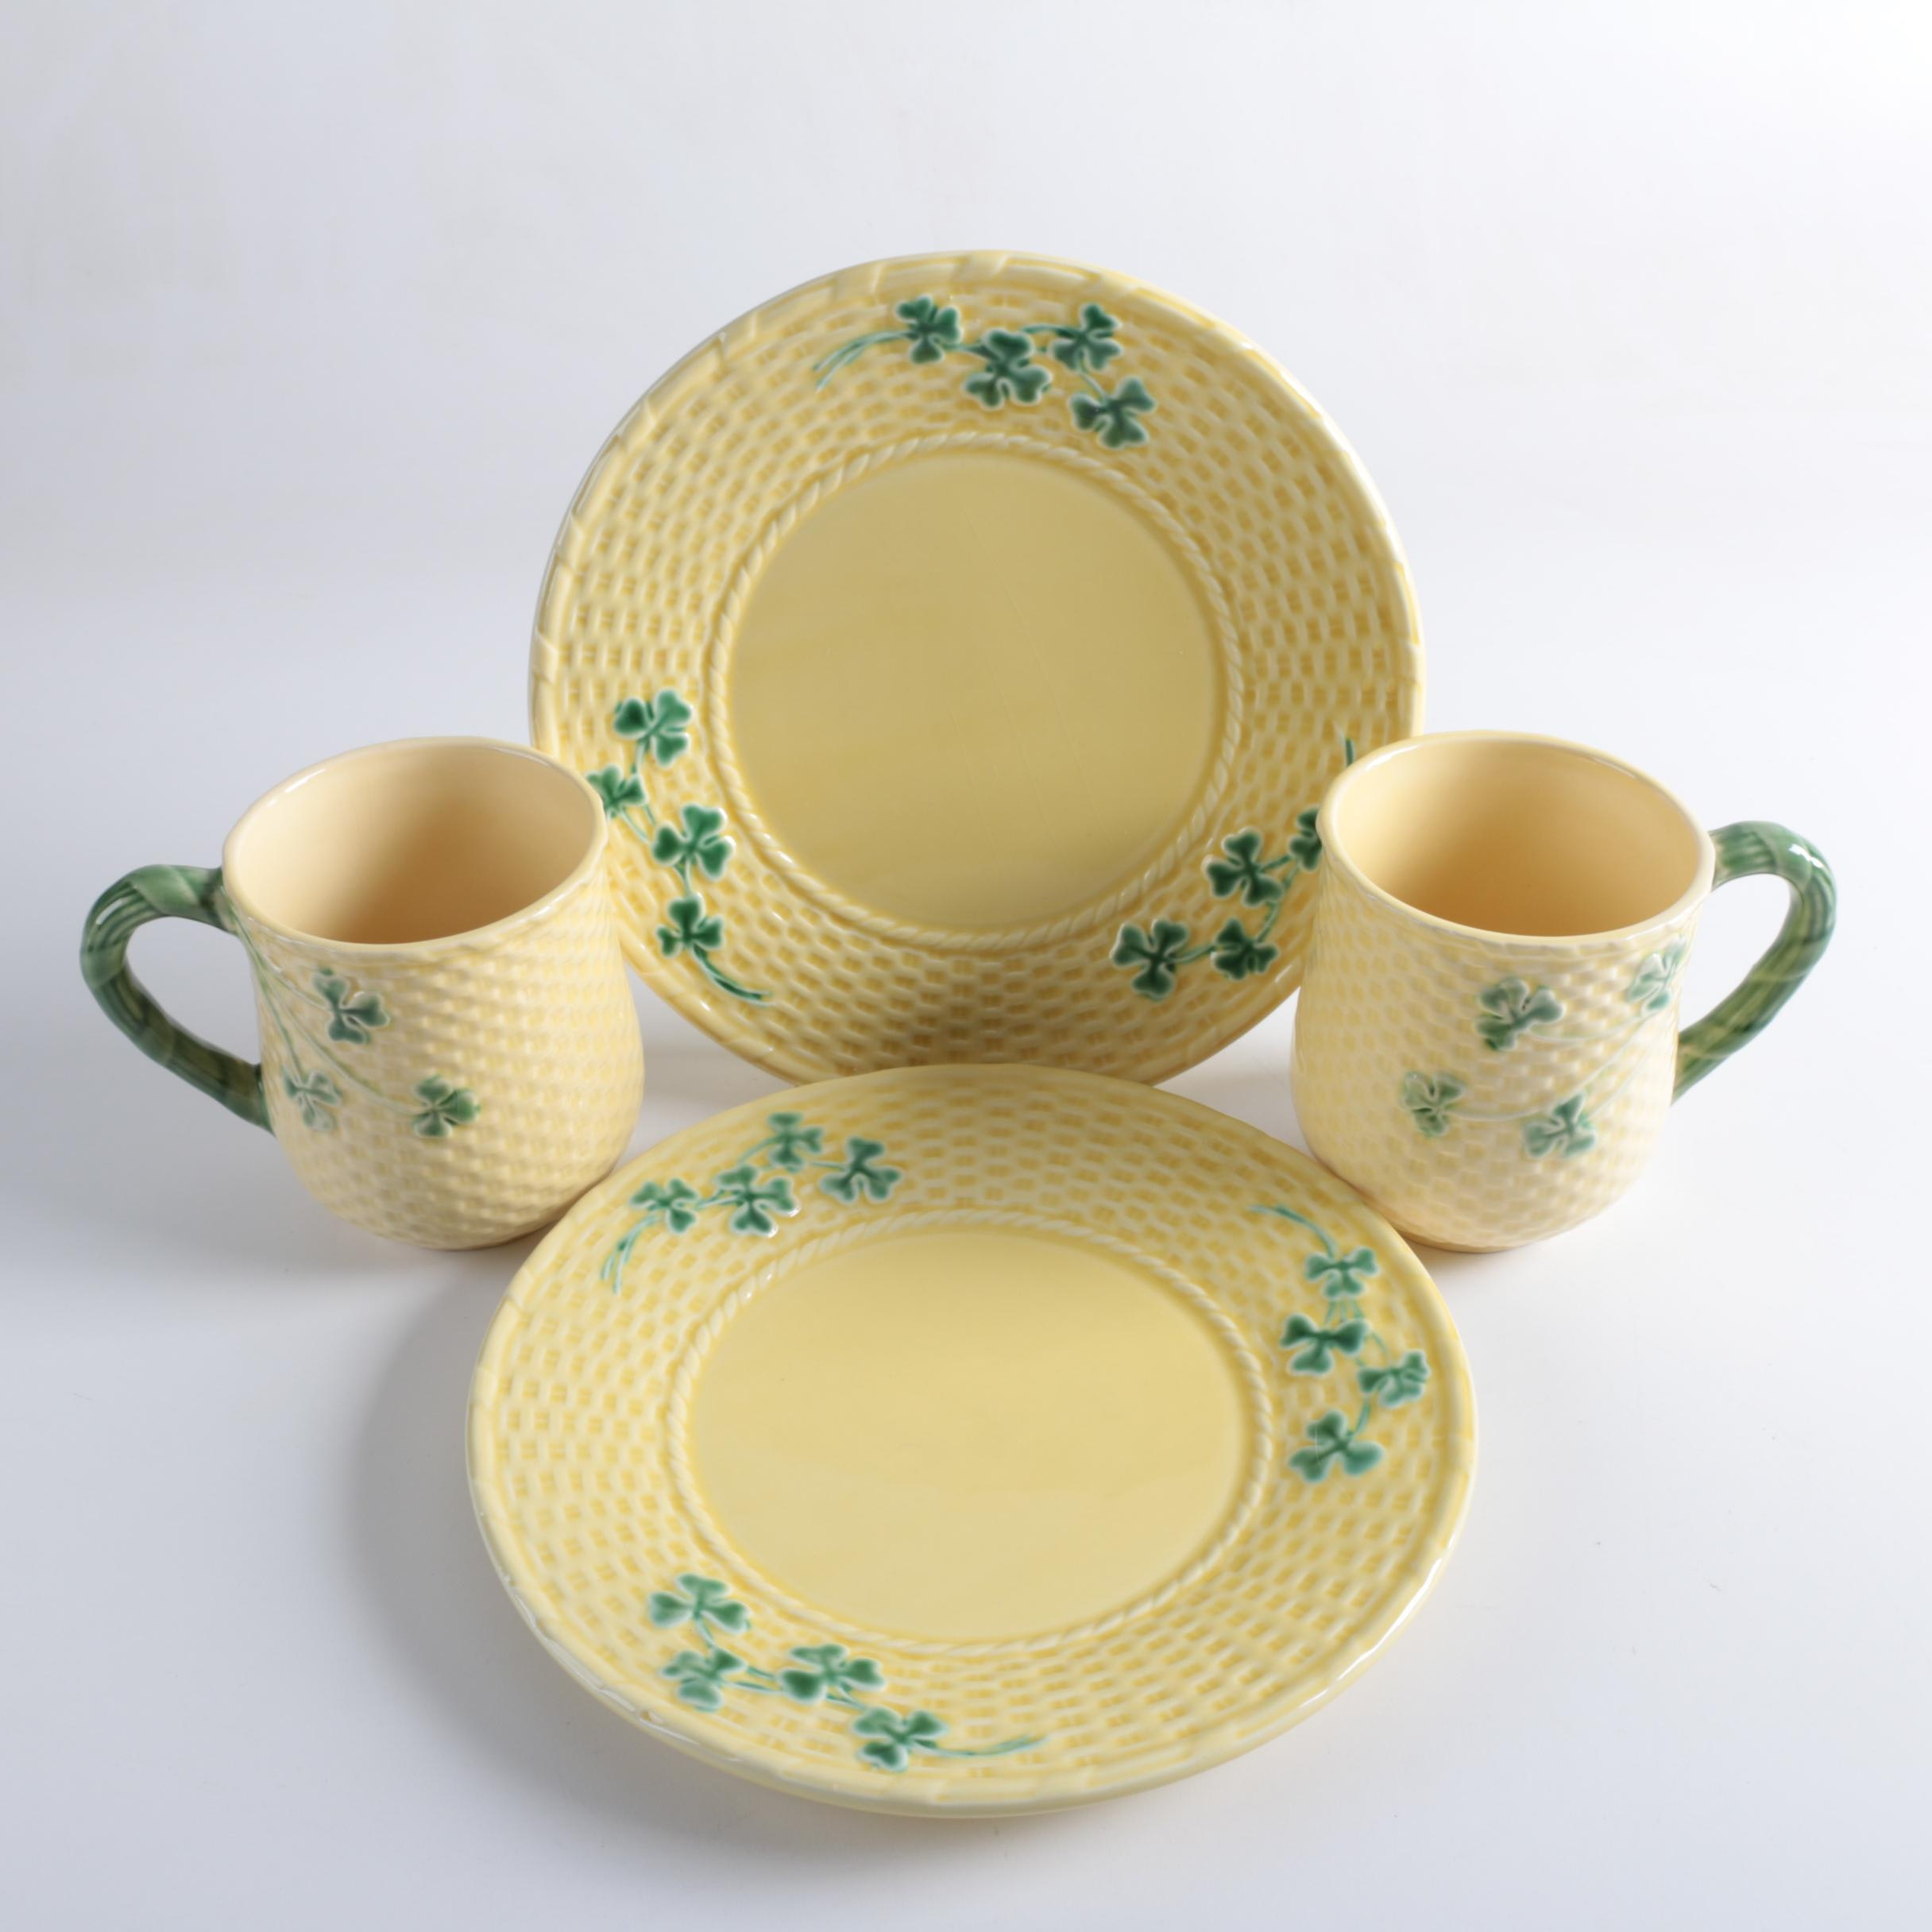 Portuguese Bordallo Pinheiro \ Shamrock\  Mugs and Plates ... : bordallo pinheiro dinnerware - pezcame.com